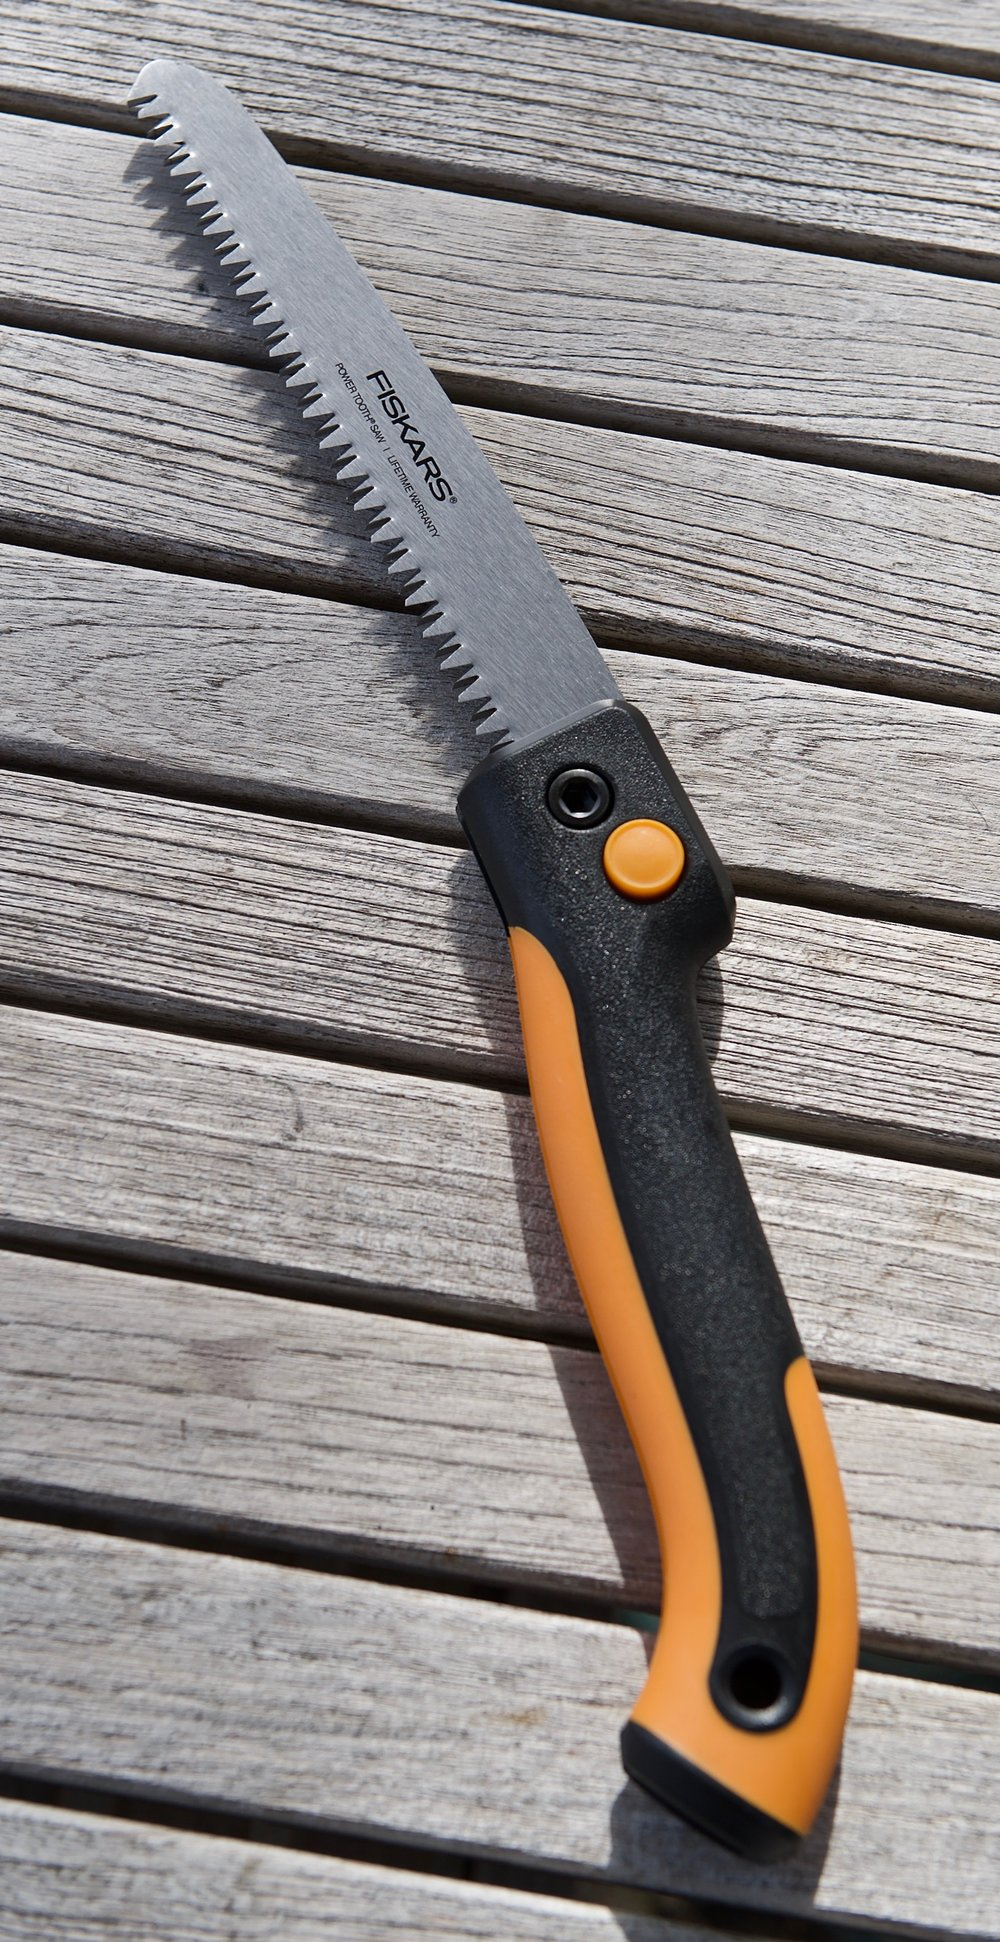 This is a little bigger saw than the SOG I carry. It will be helpful on the bigger branches, firewood...